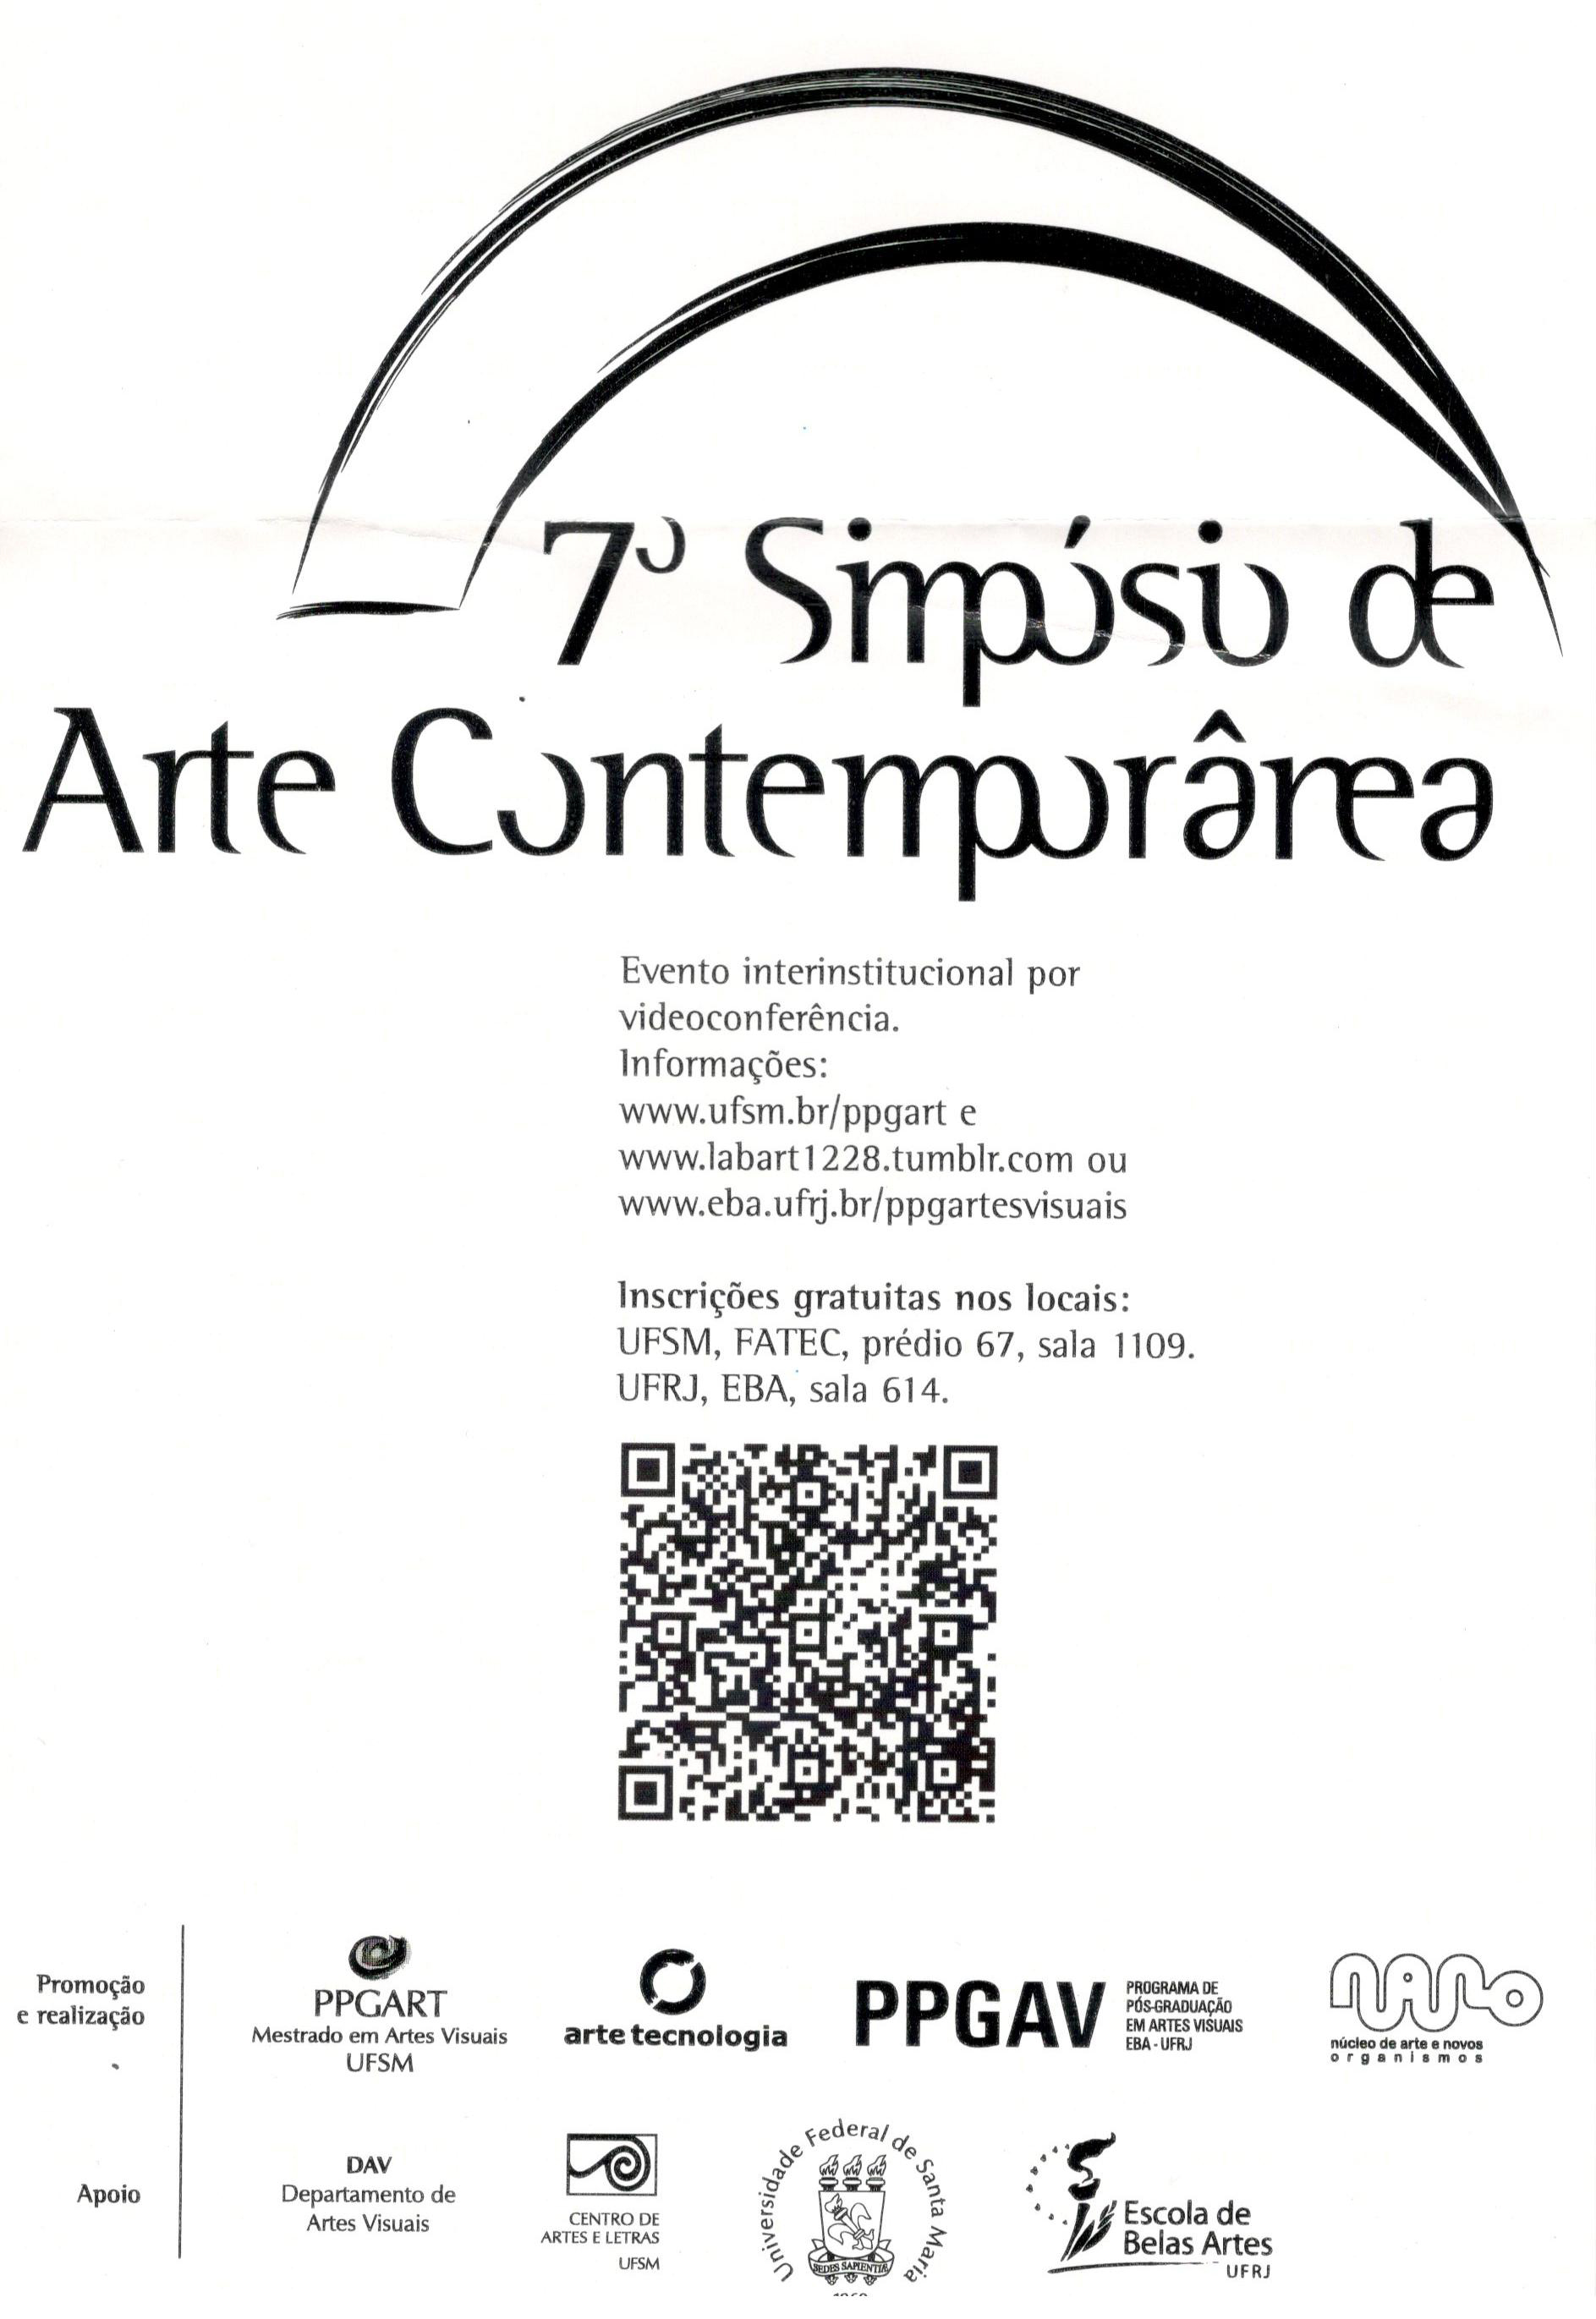 7 simposio de arte contemporanea 2012 2 flayer